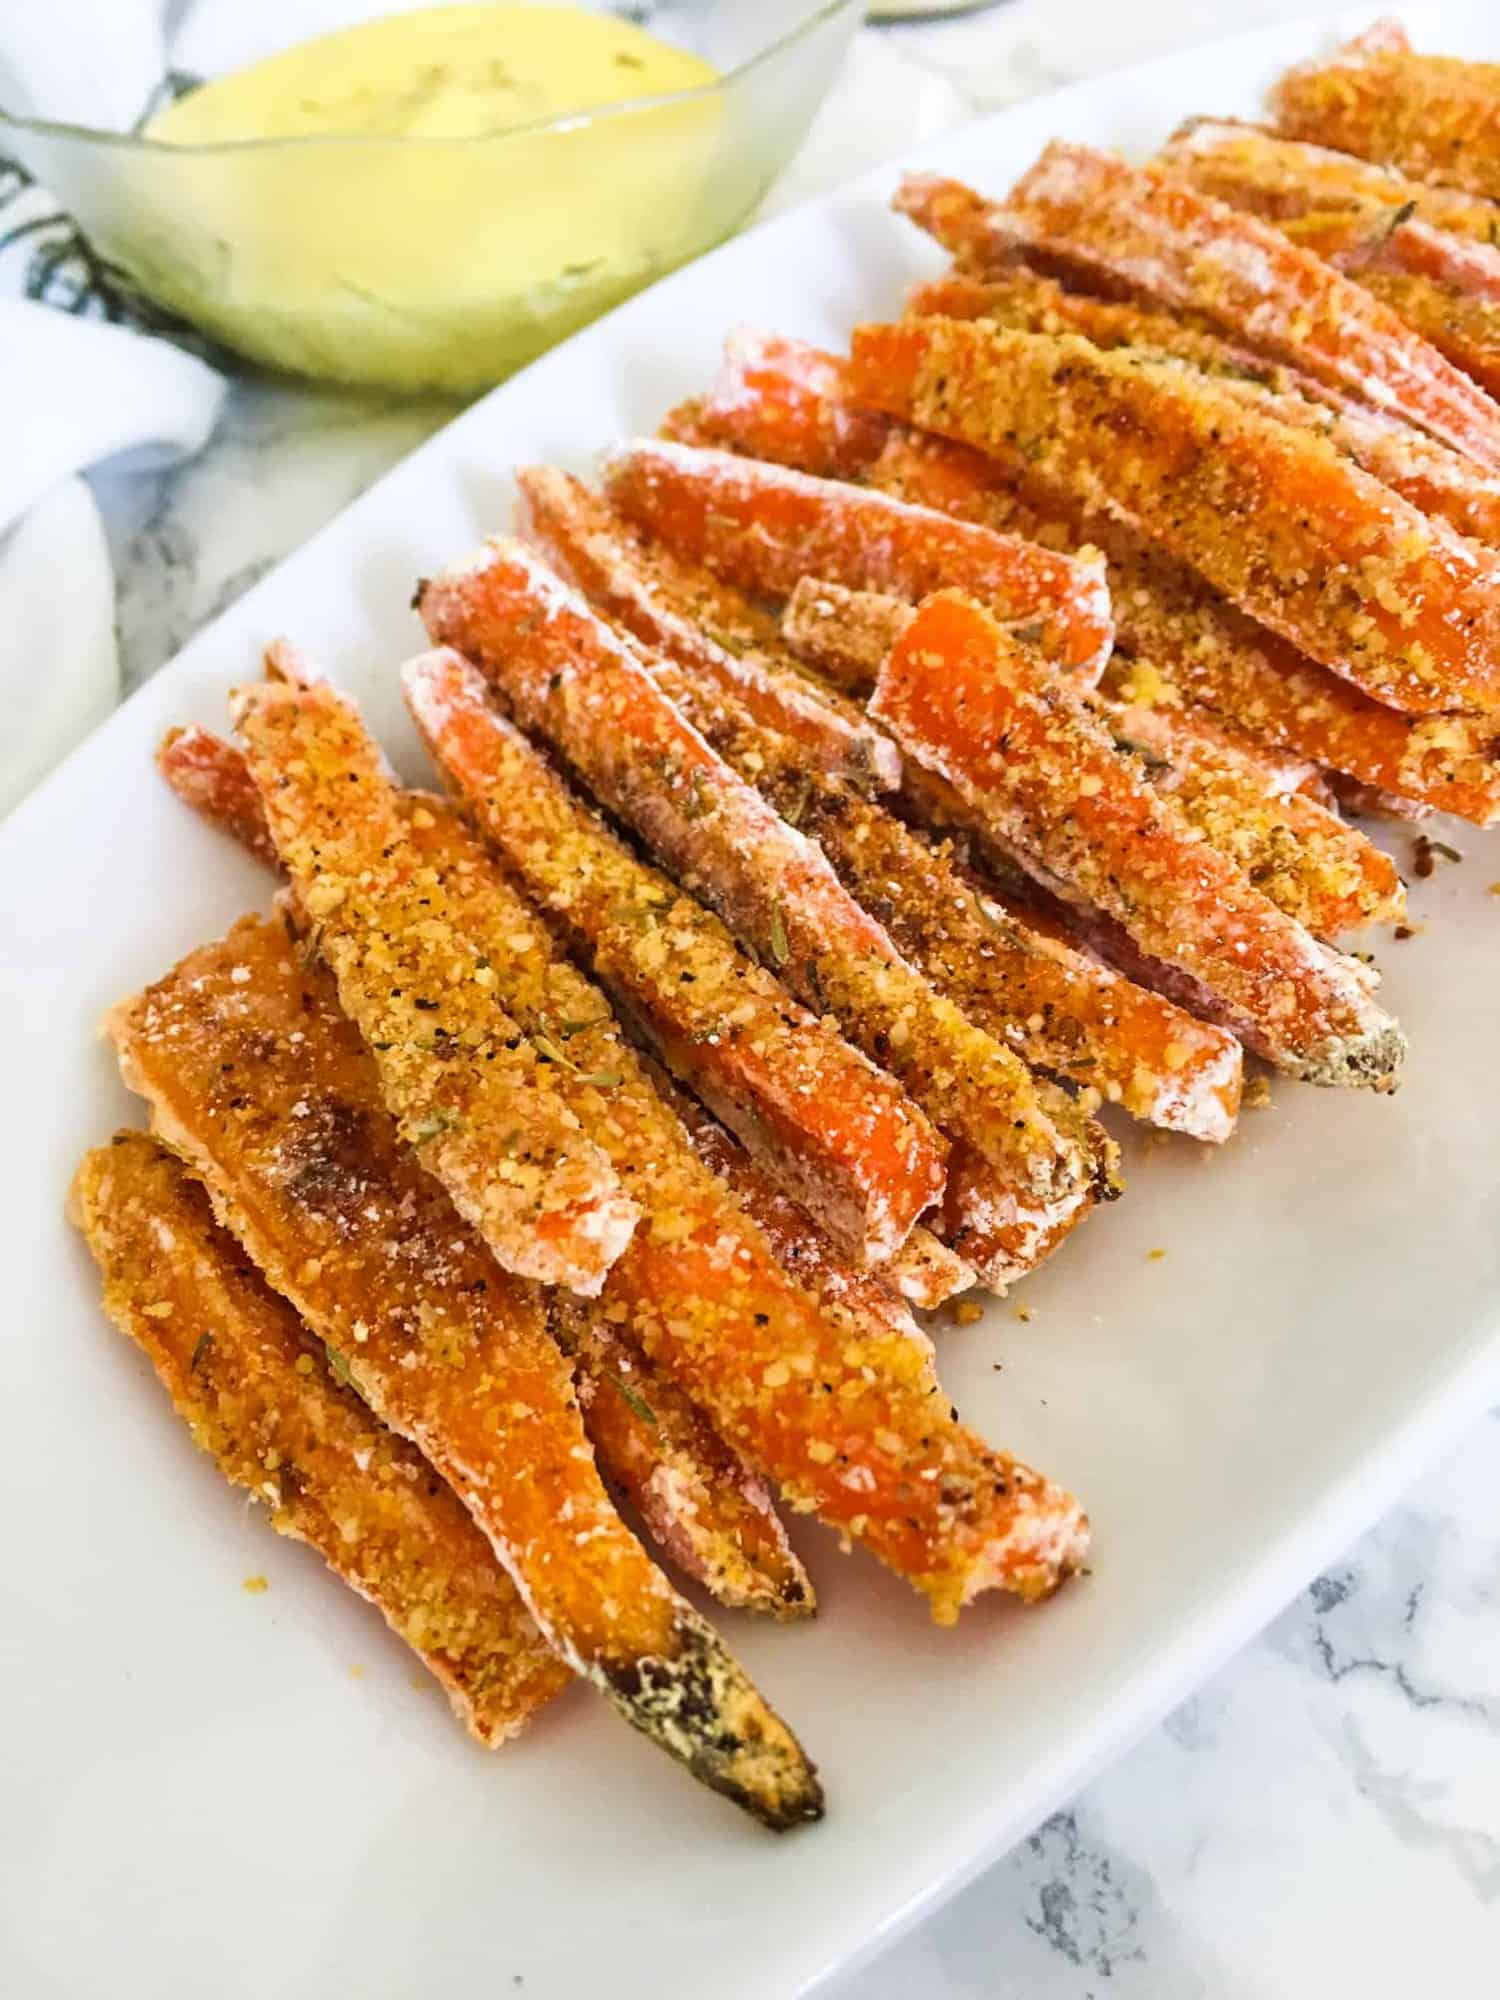 carrot fries on white serving platter